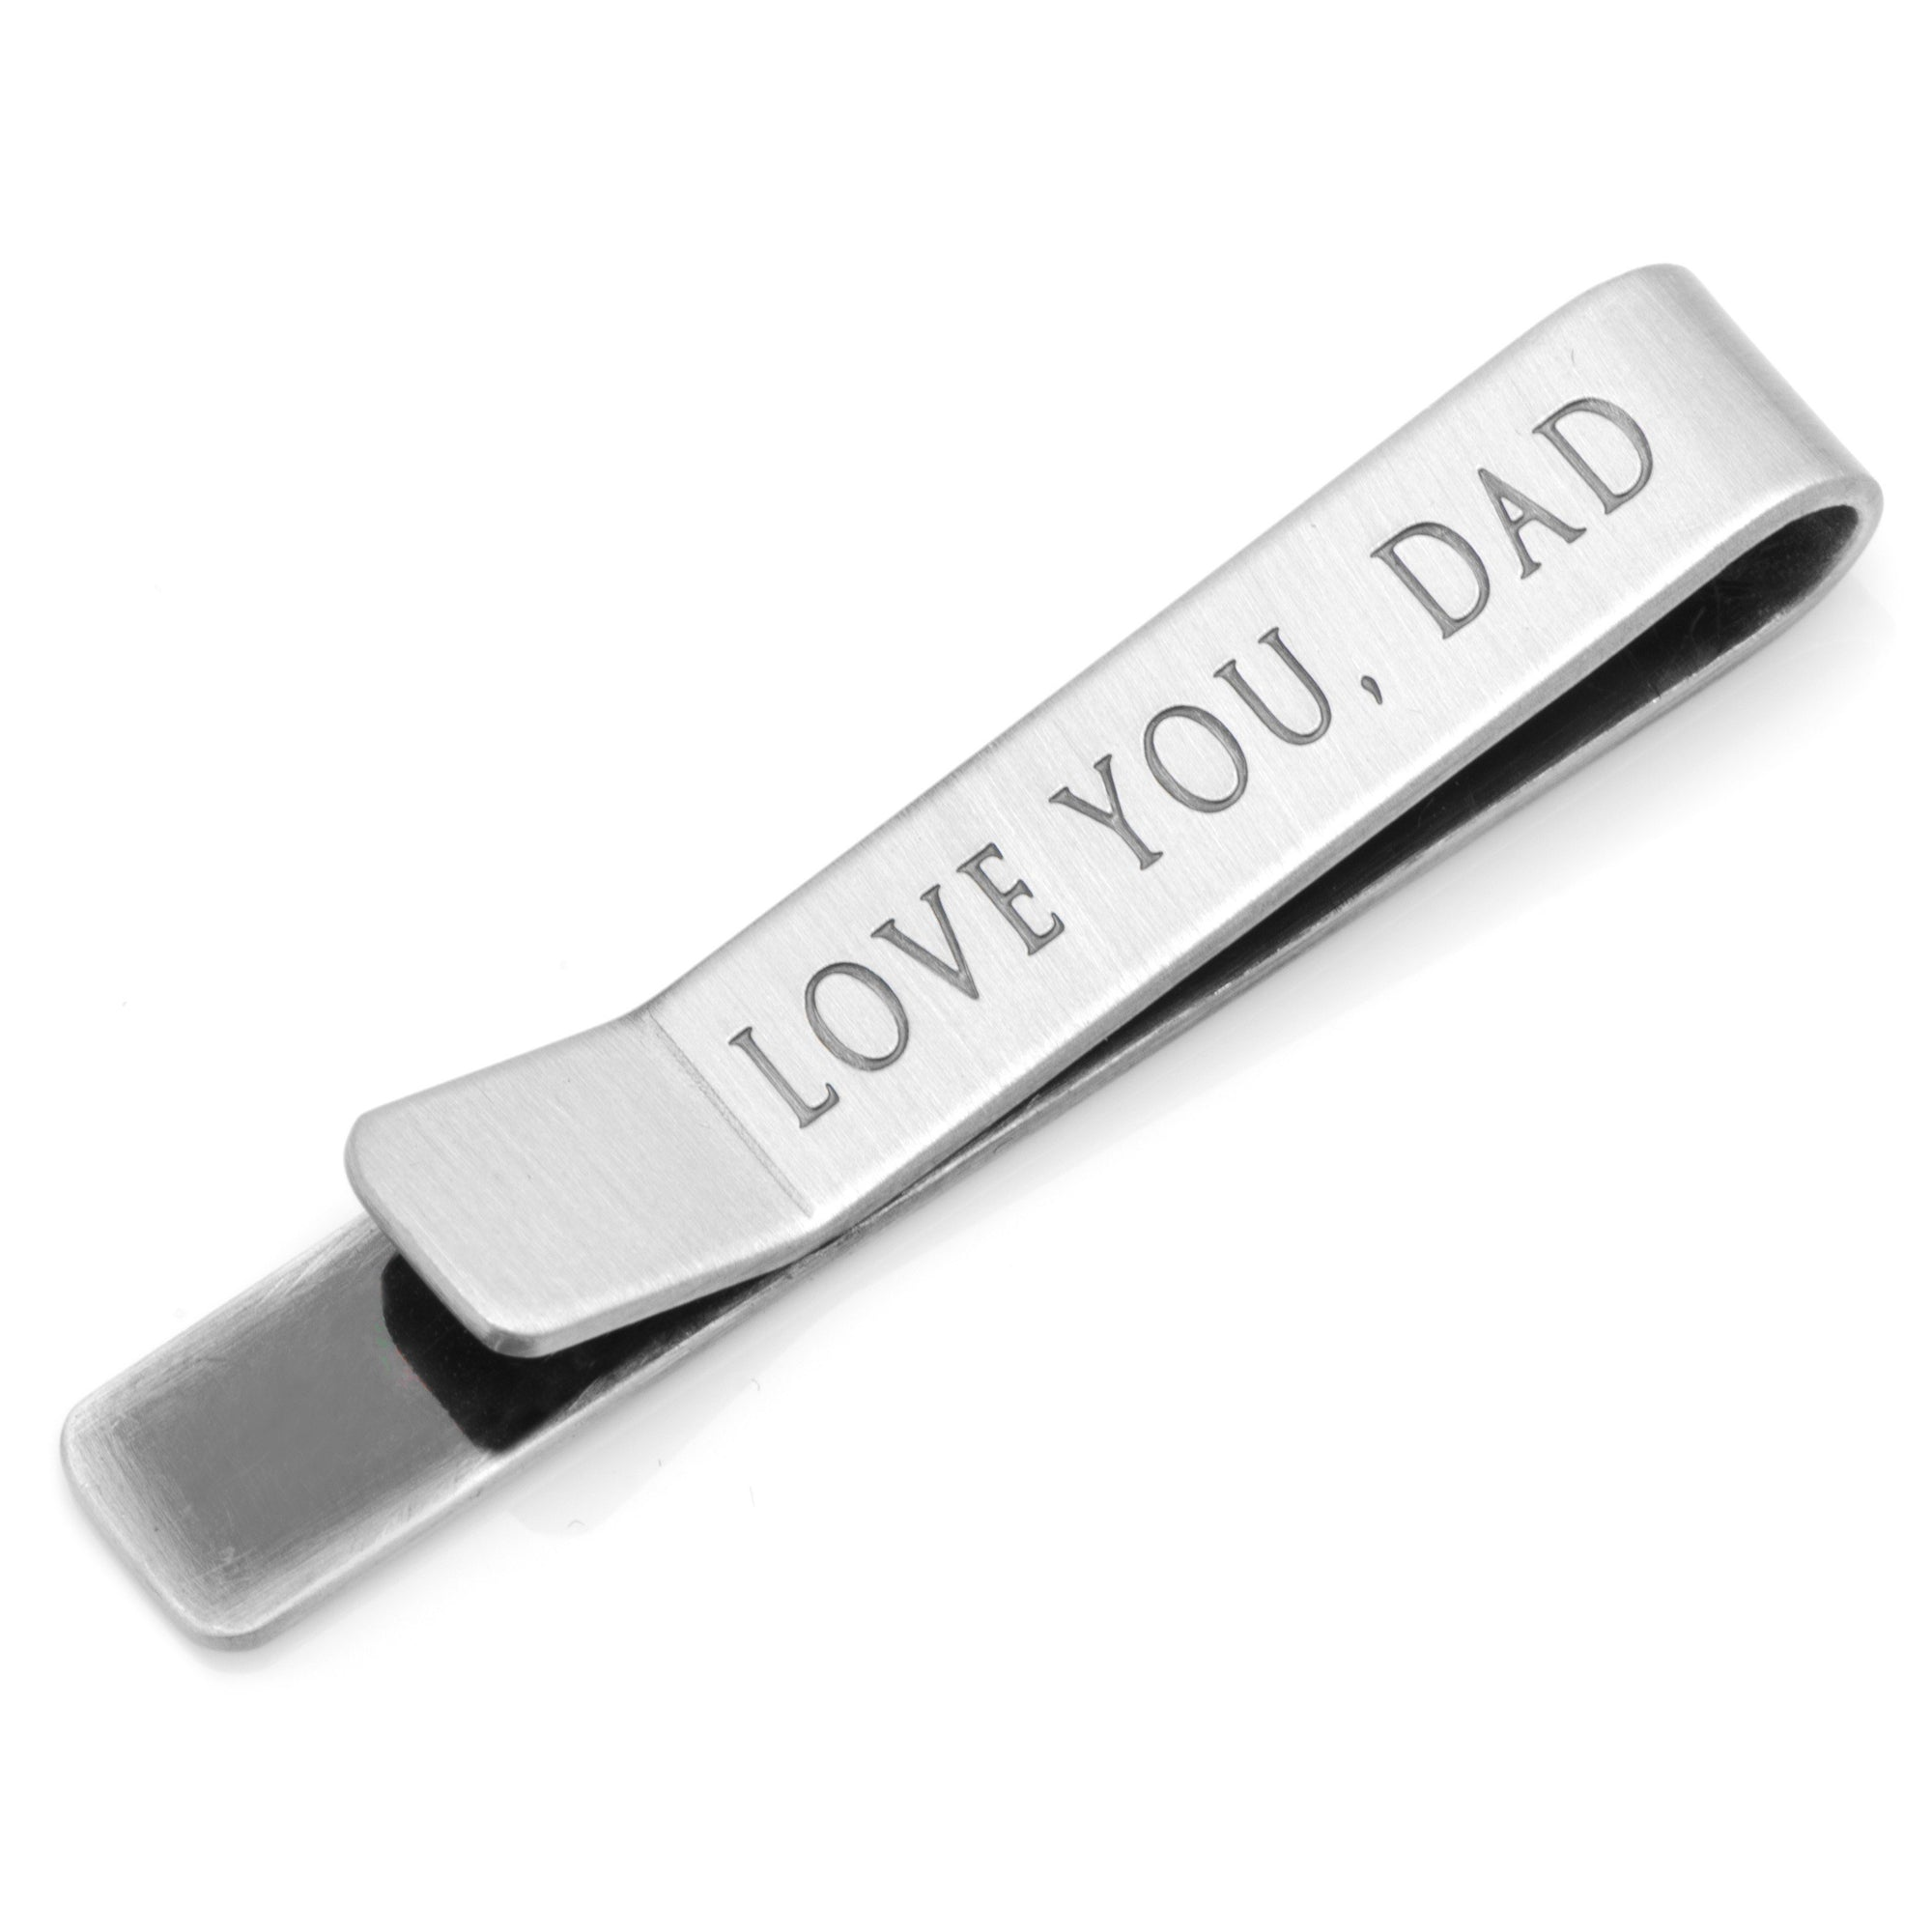 "Brushed Silver ""Love You, Dad"" Tie Clip Tie Bars Clinks Australia Brushed Silver I Love You, Dad Engraved Tie Clip"